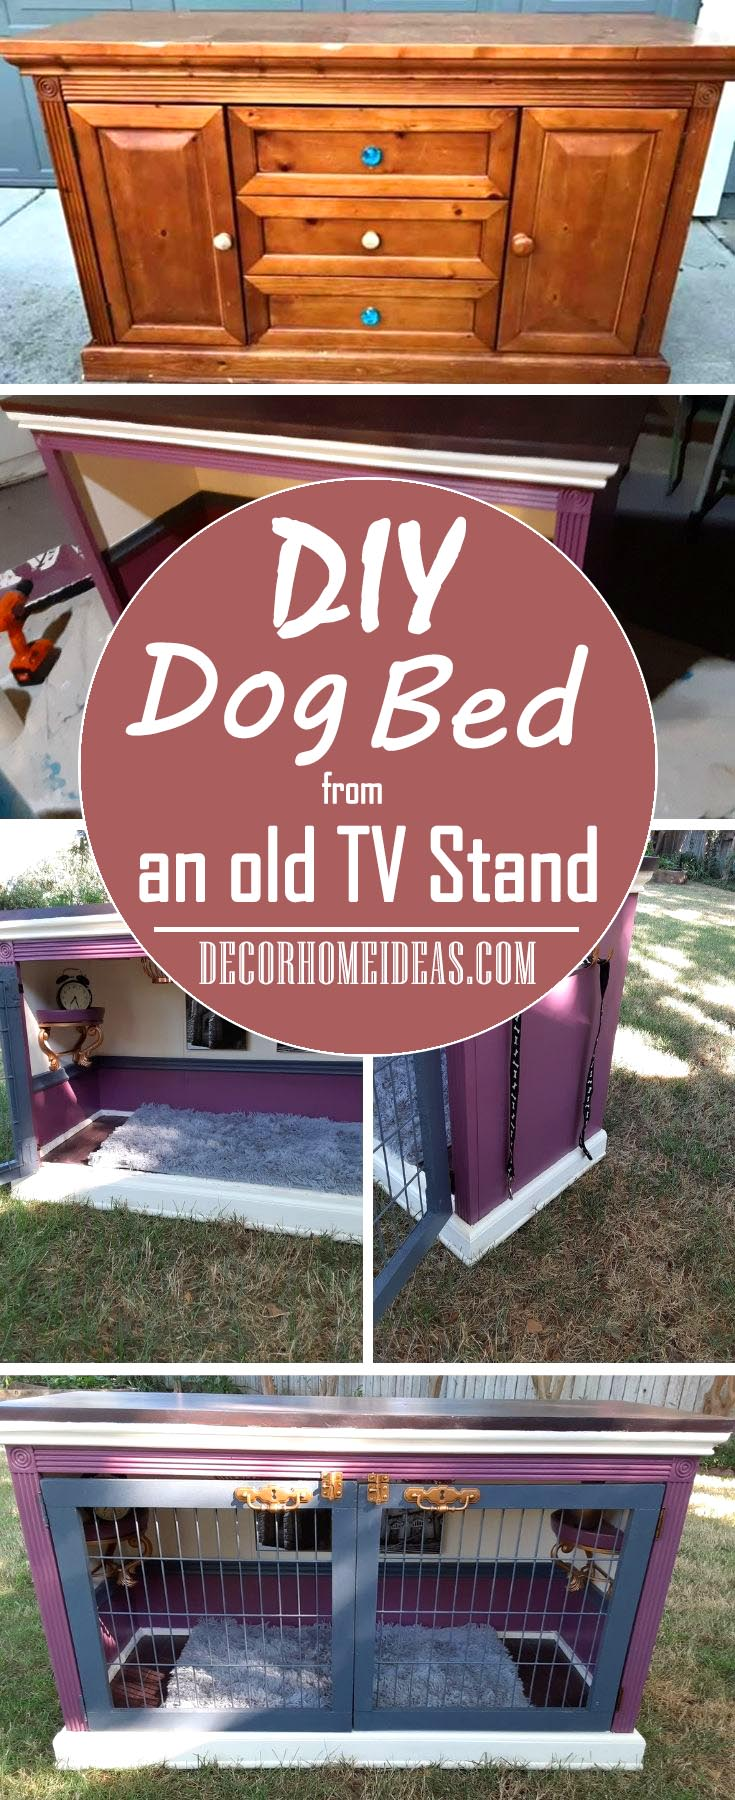 How to DIY dog bed from an old TV stand. Step by step instructions and materials needed for the best dog house with bed.